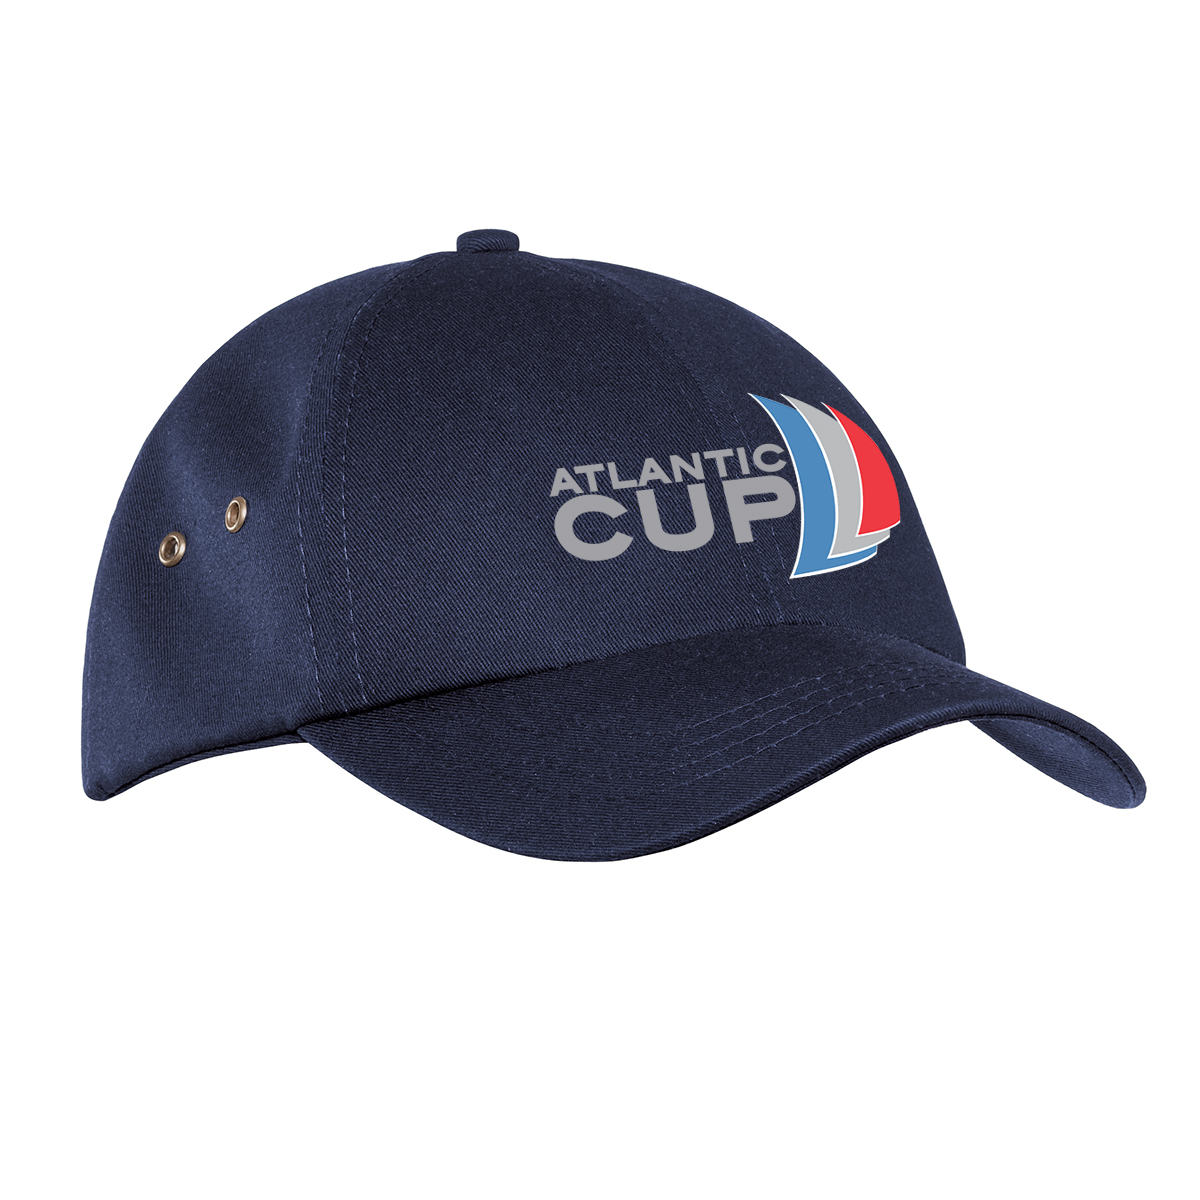 ATLANTIC CUP - HAT